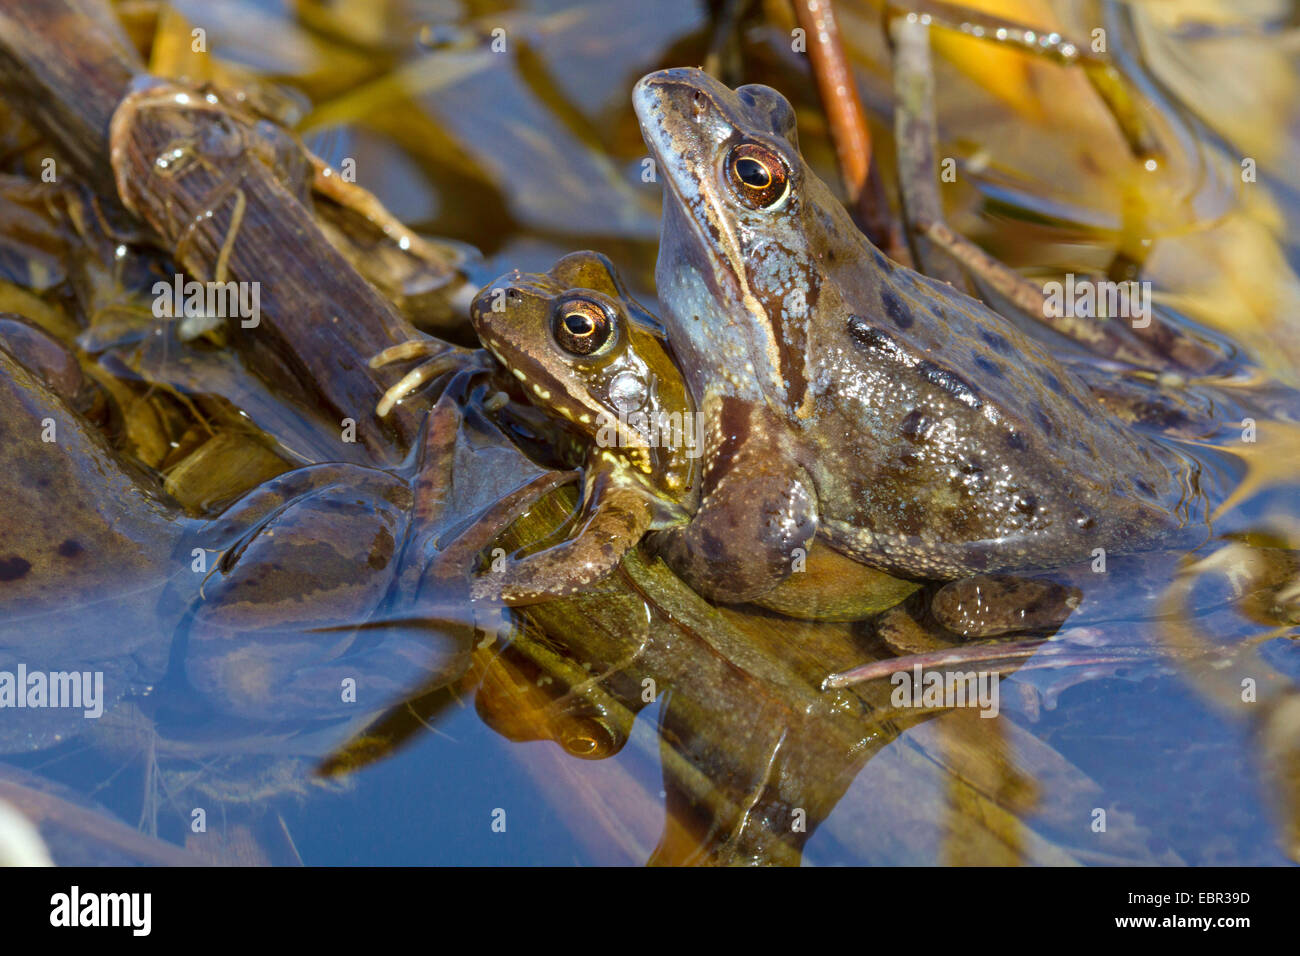 common frog, grass frog (Rana temporaria), male clutching the female, Germany - Stock Image